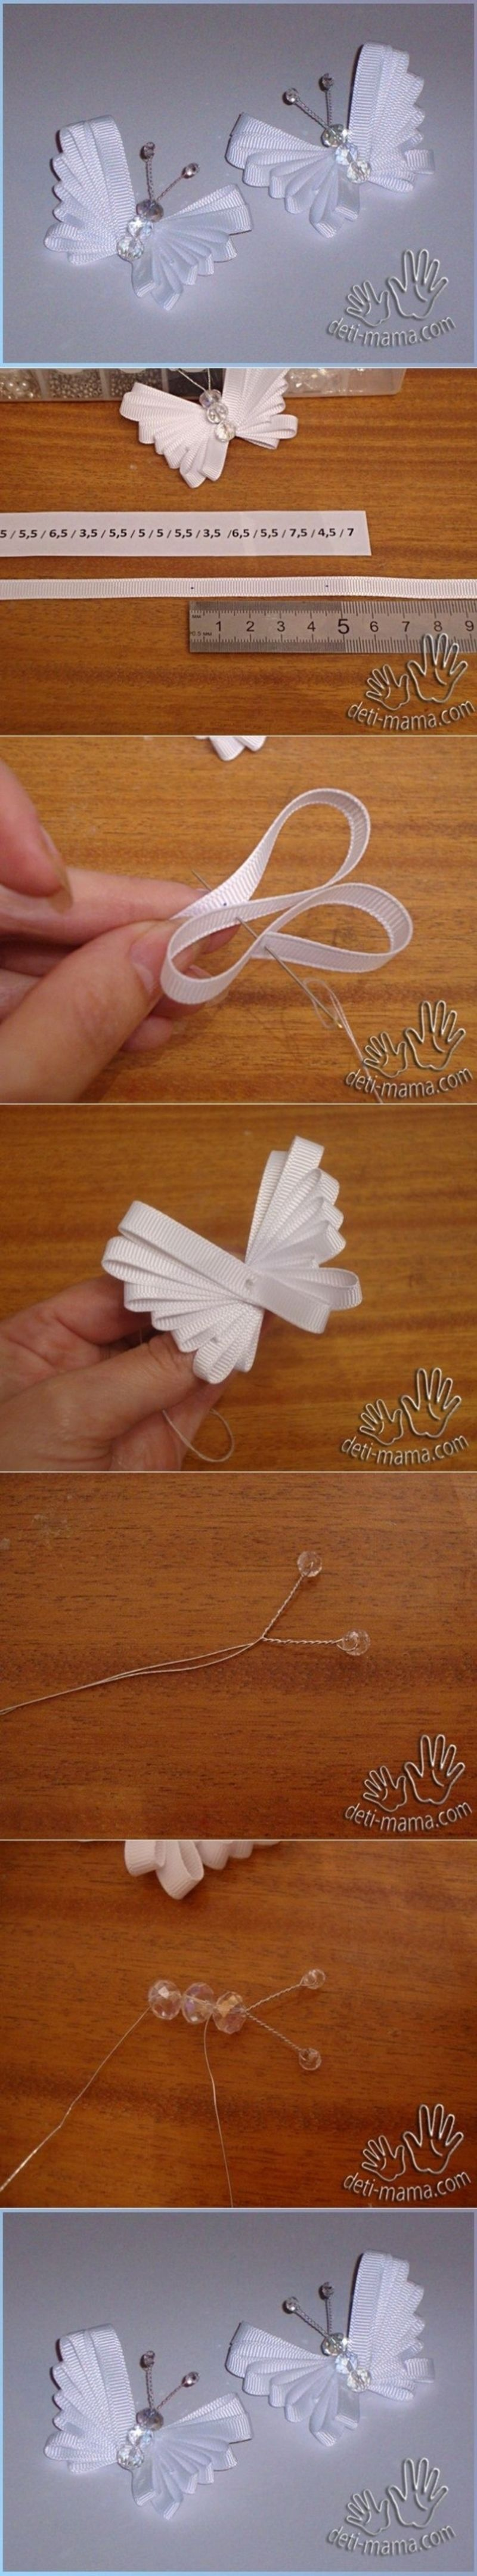 35 #Ribbon Crafts from Lengths and Scraps ... #ribboncrafts